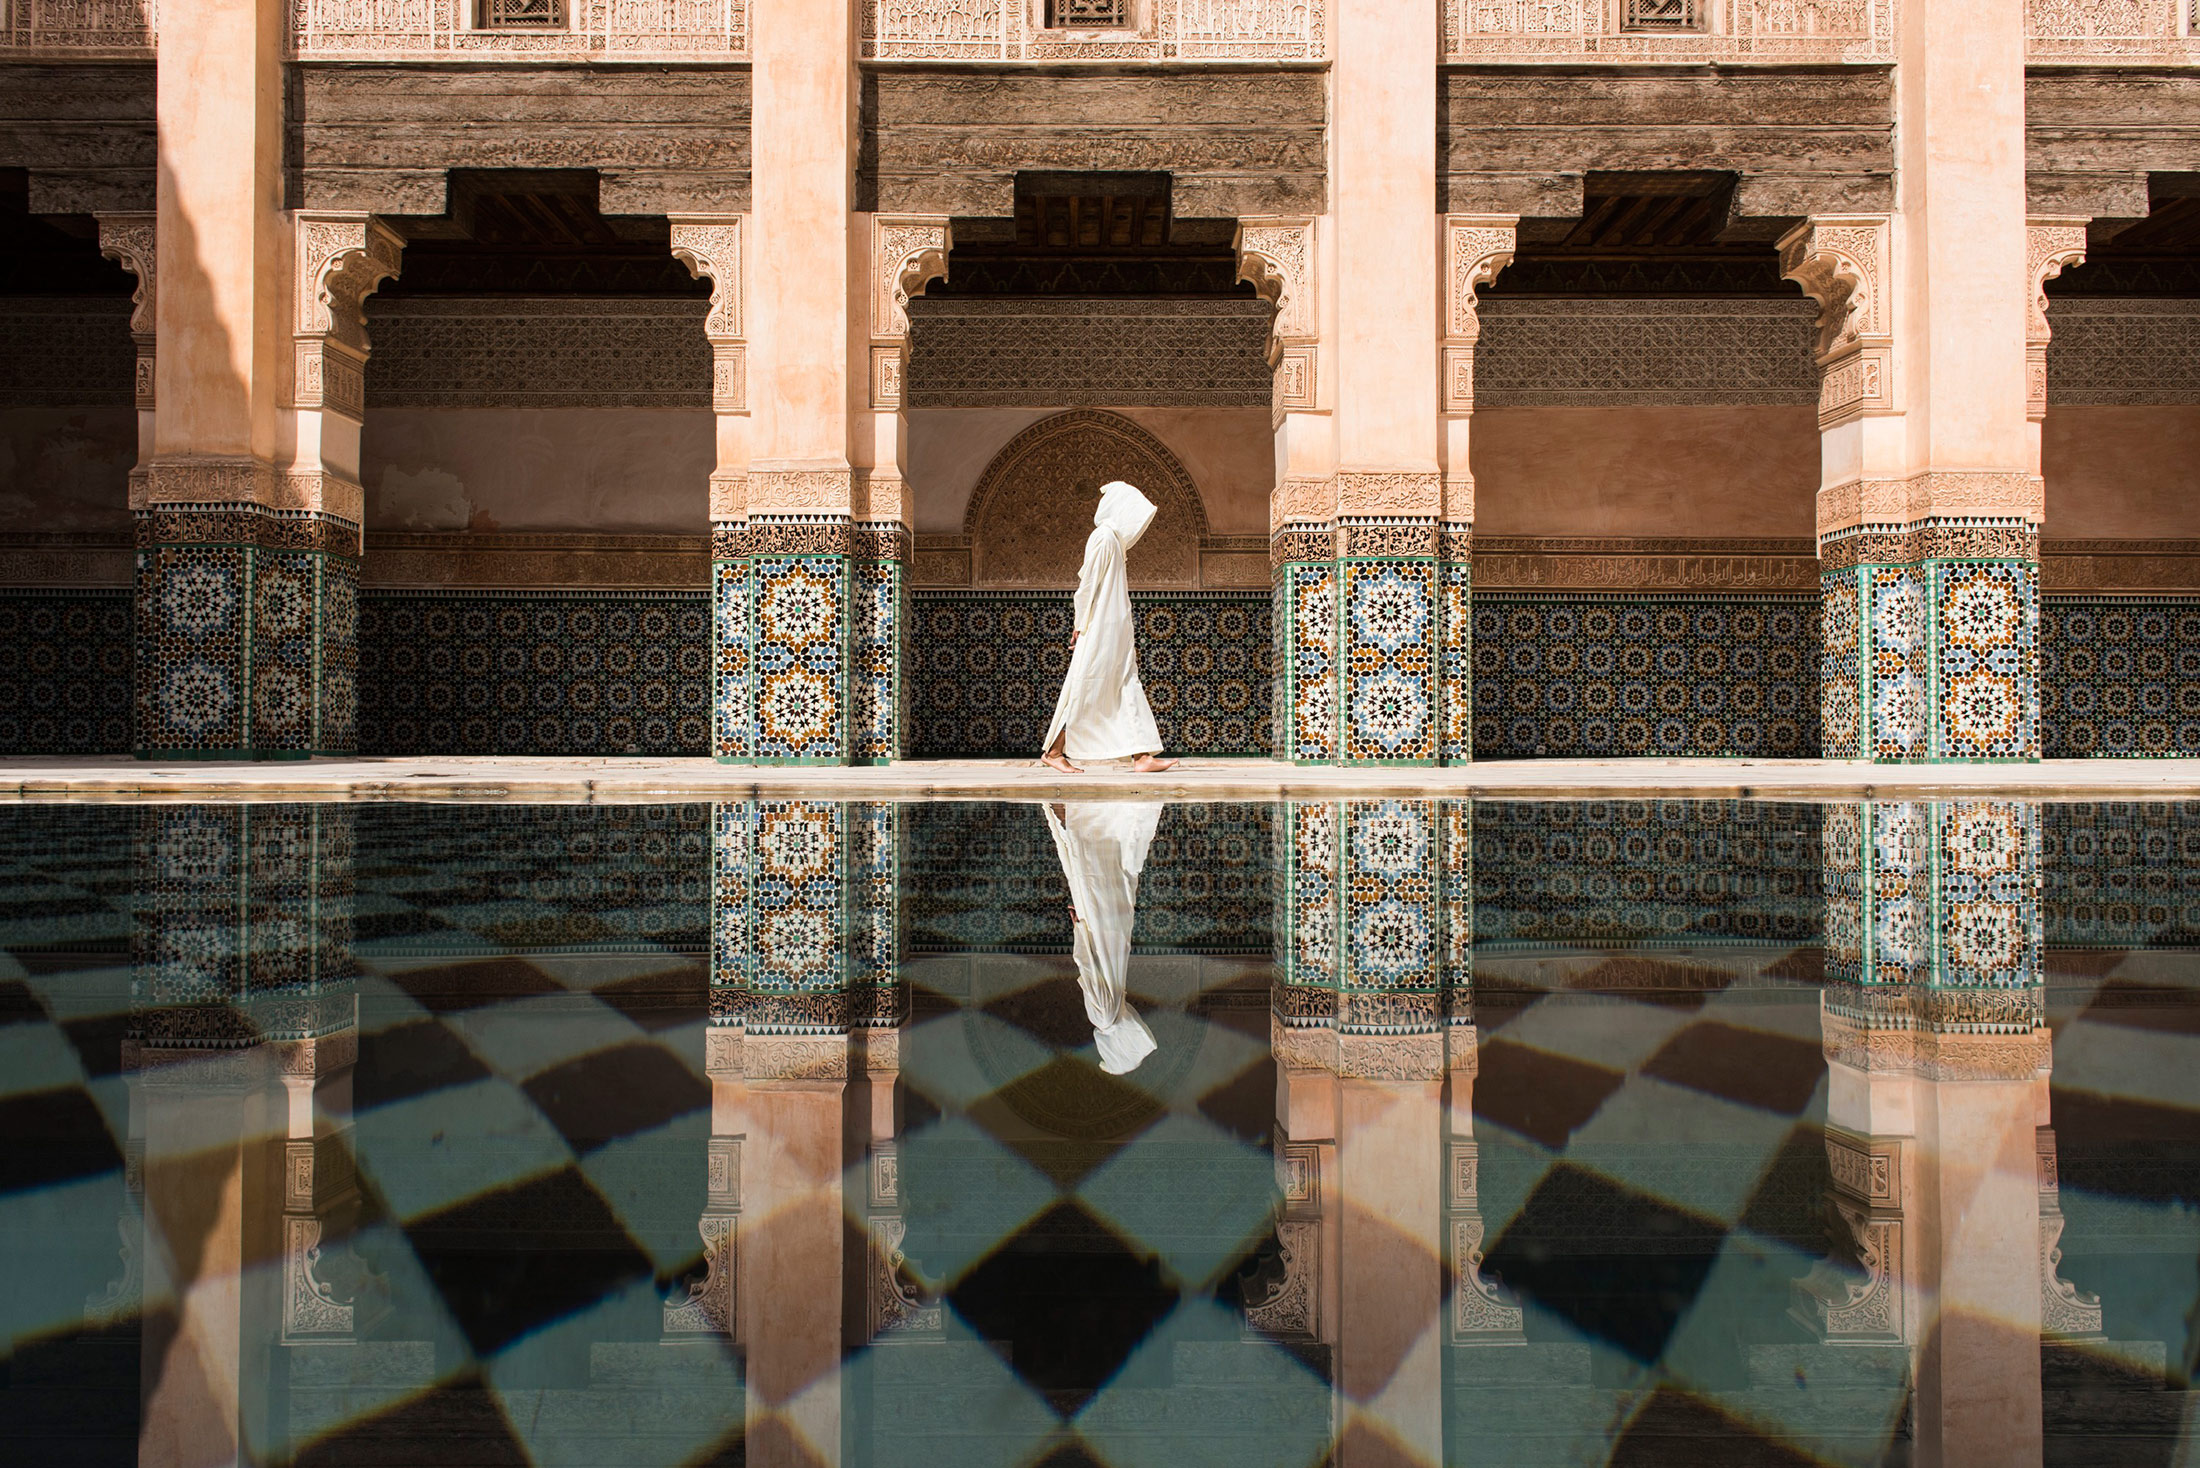 Cities First Place: Ben Youssef